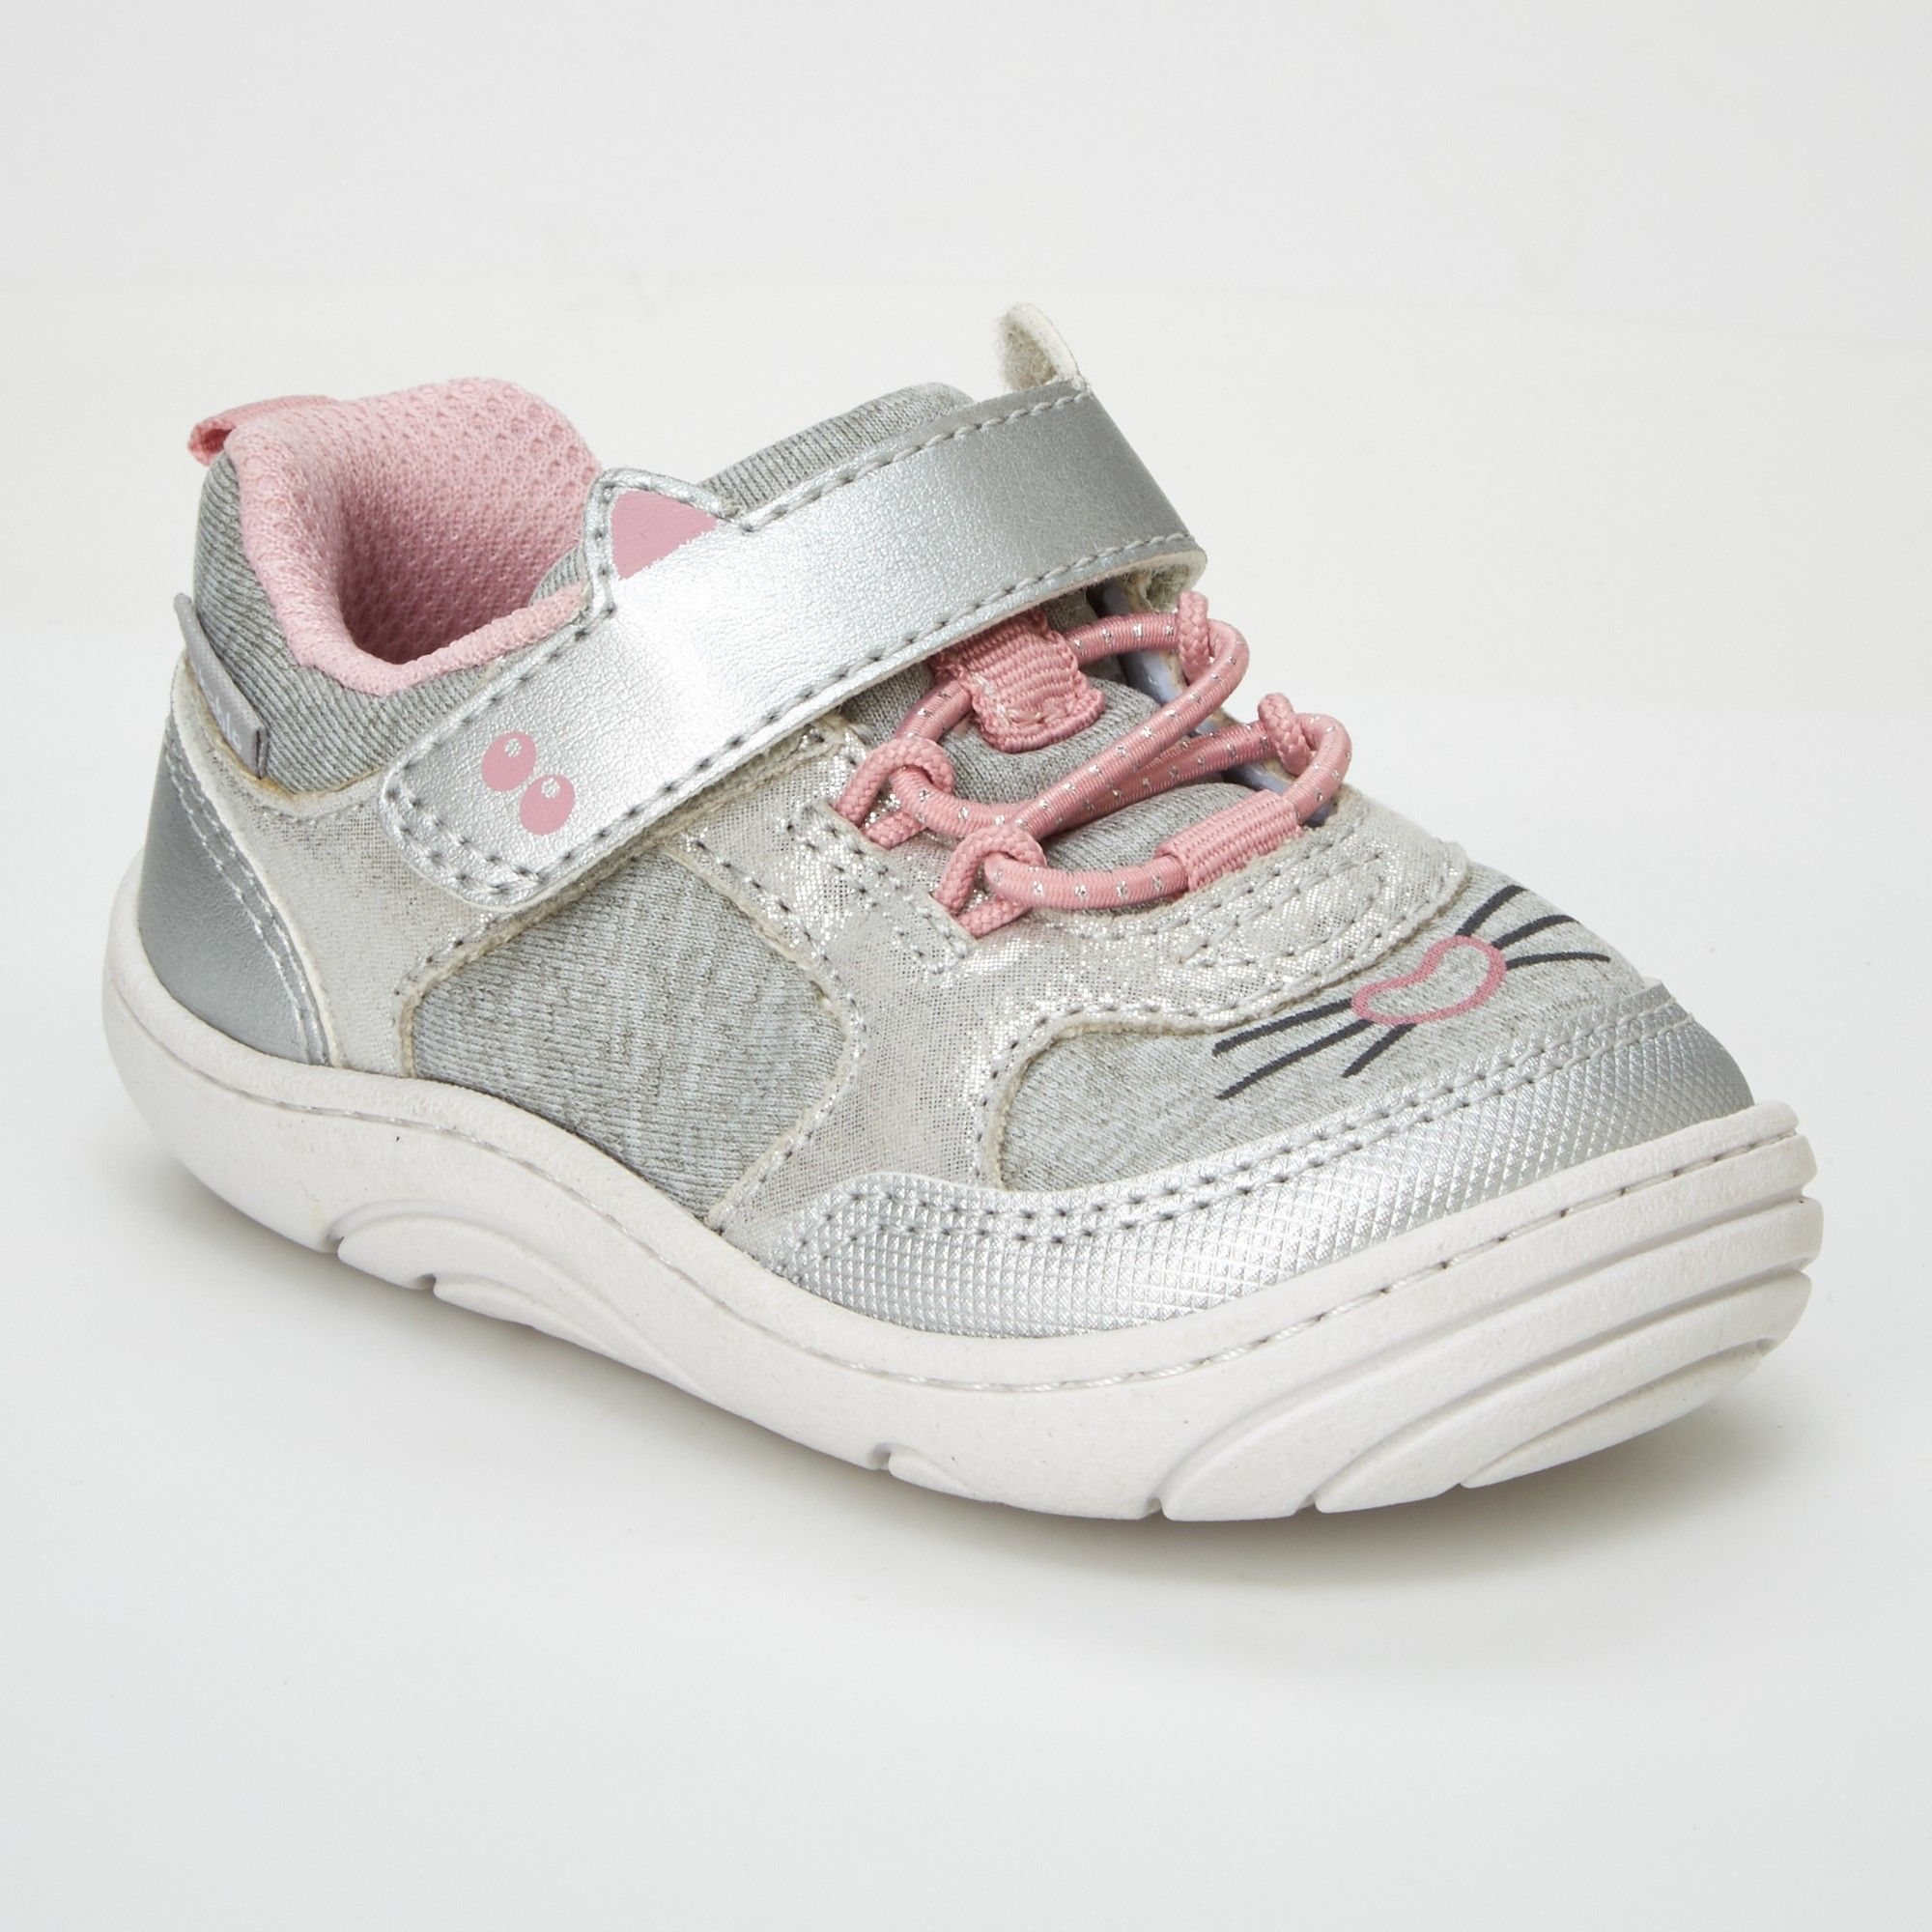 Toddler Girls' Surprize by Stride Rite